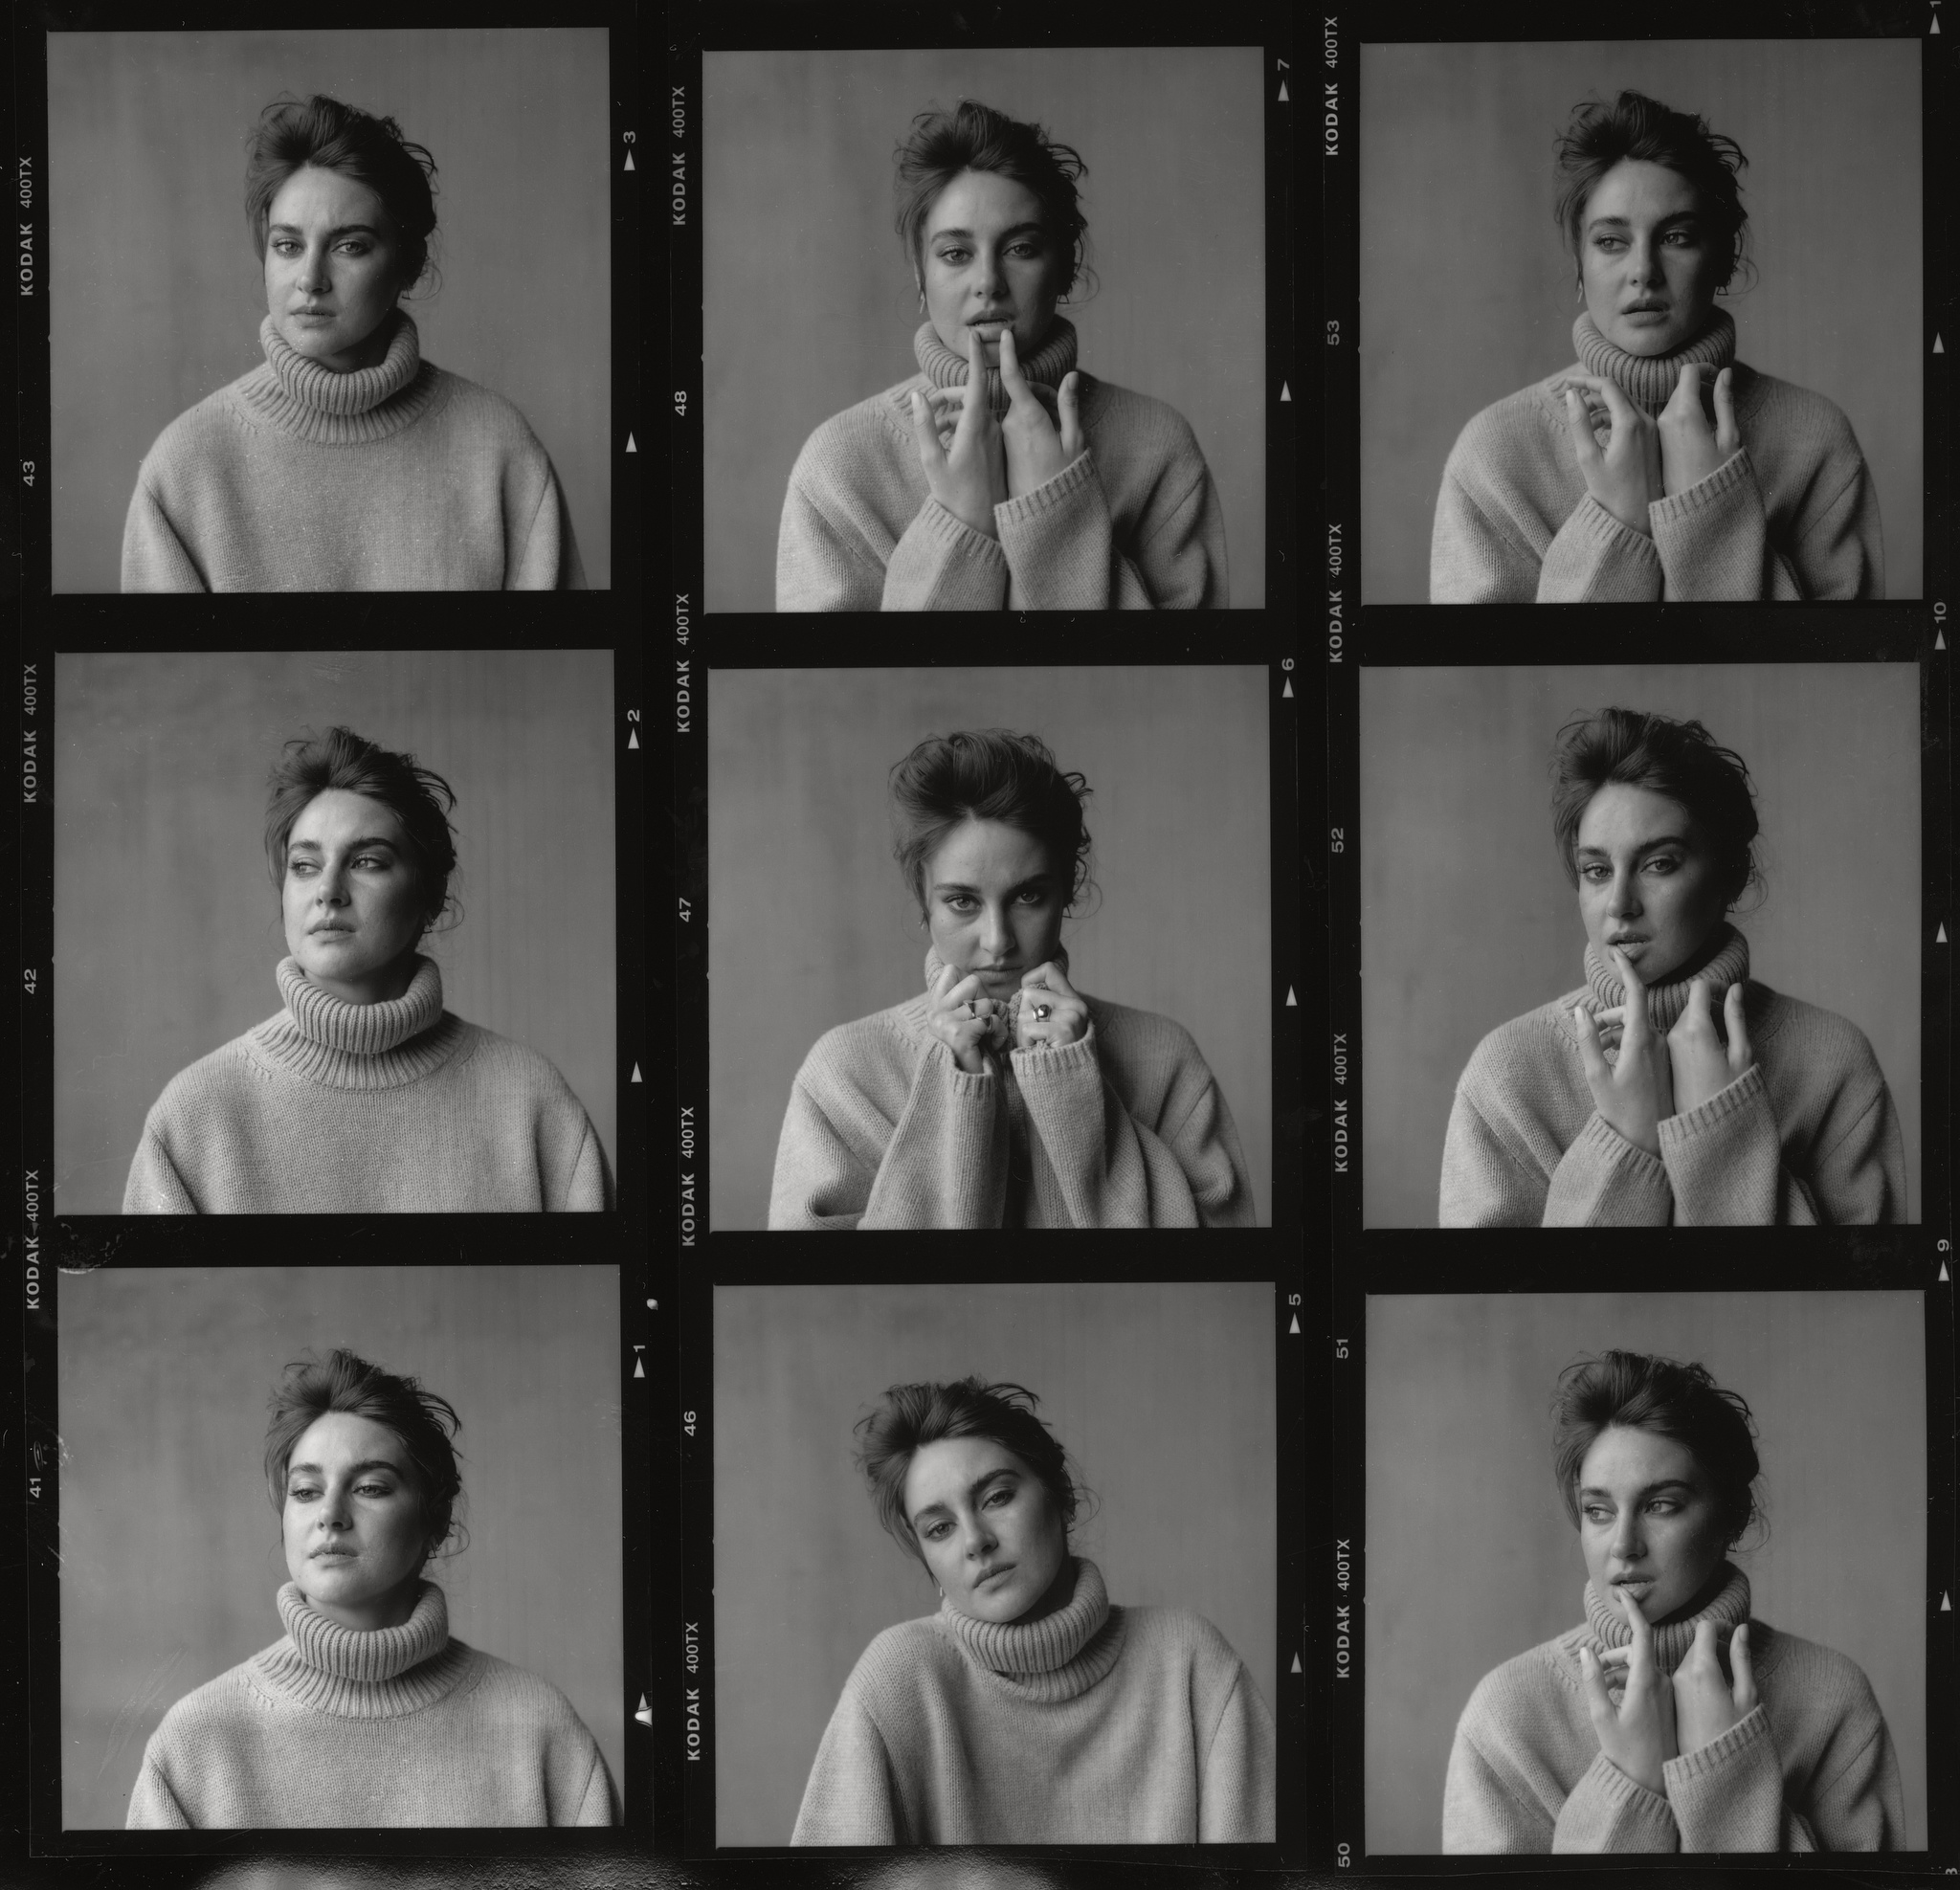 Shailene Woodley for WWD by Leigh Nordstrom, Styled by Alex Badia